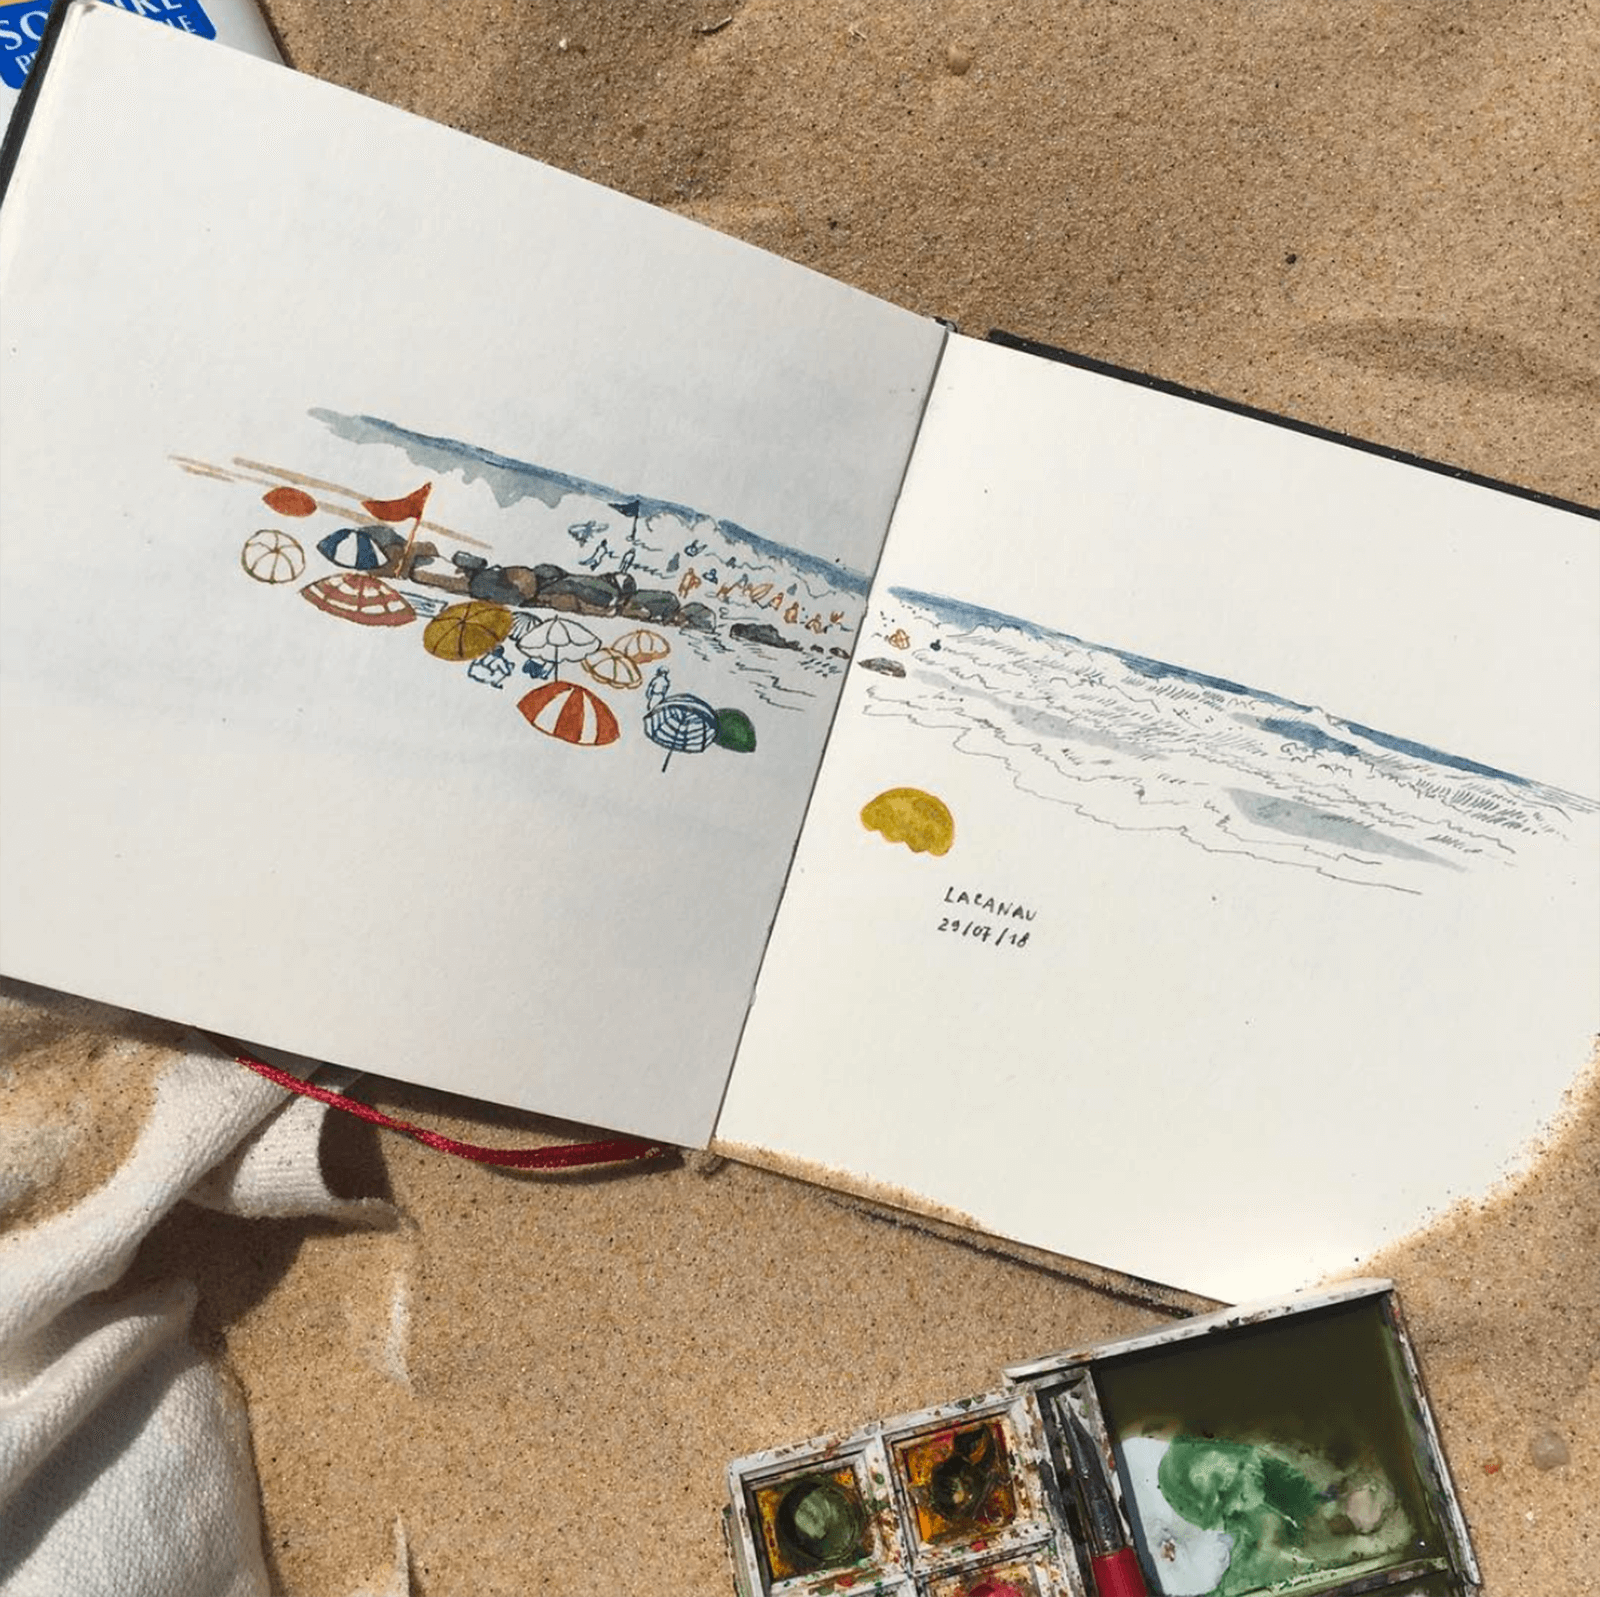 A sketch of the beach with colourful umbrellas